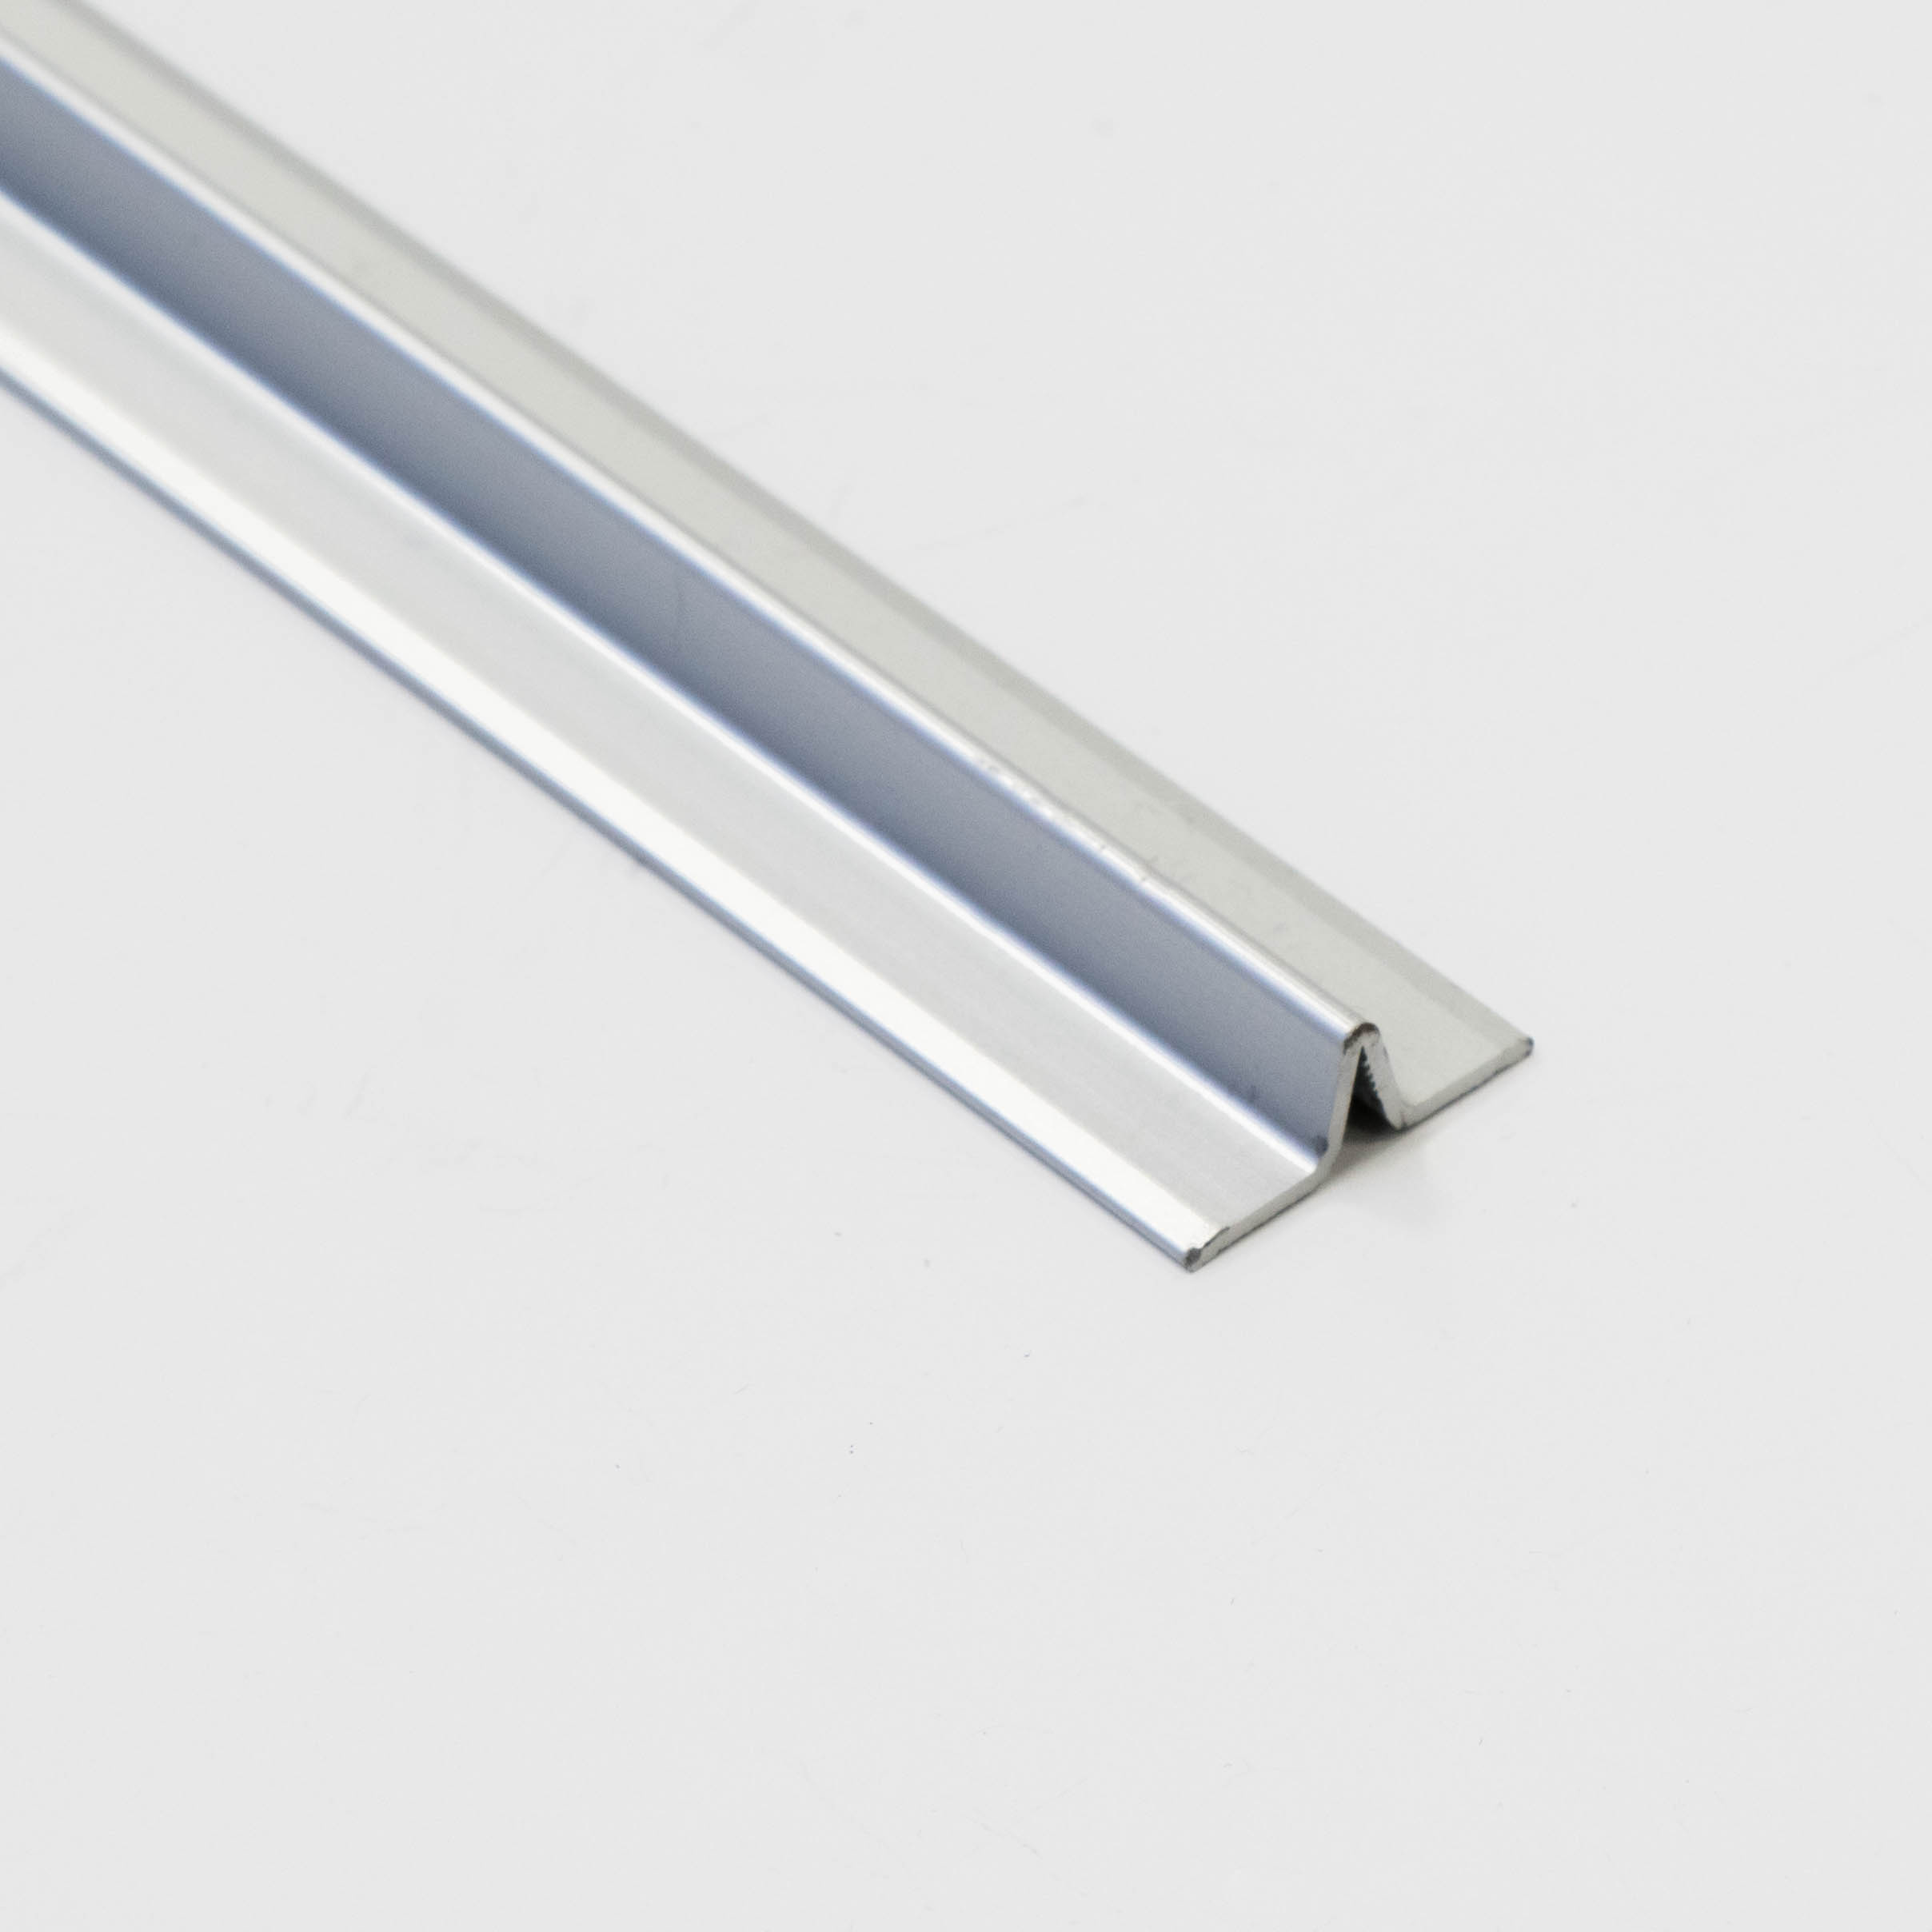 Replacement Window Screen Frame - Everything You Need To Screen A ...